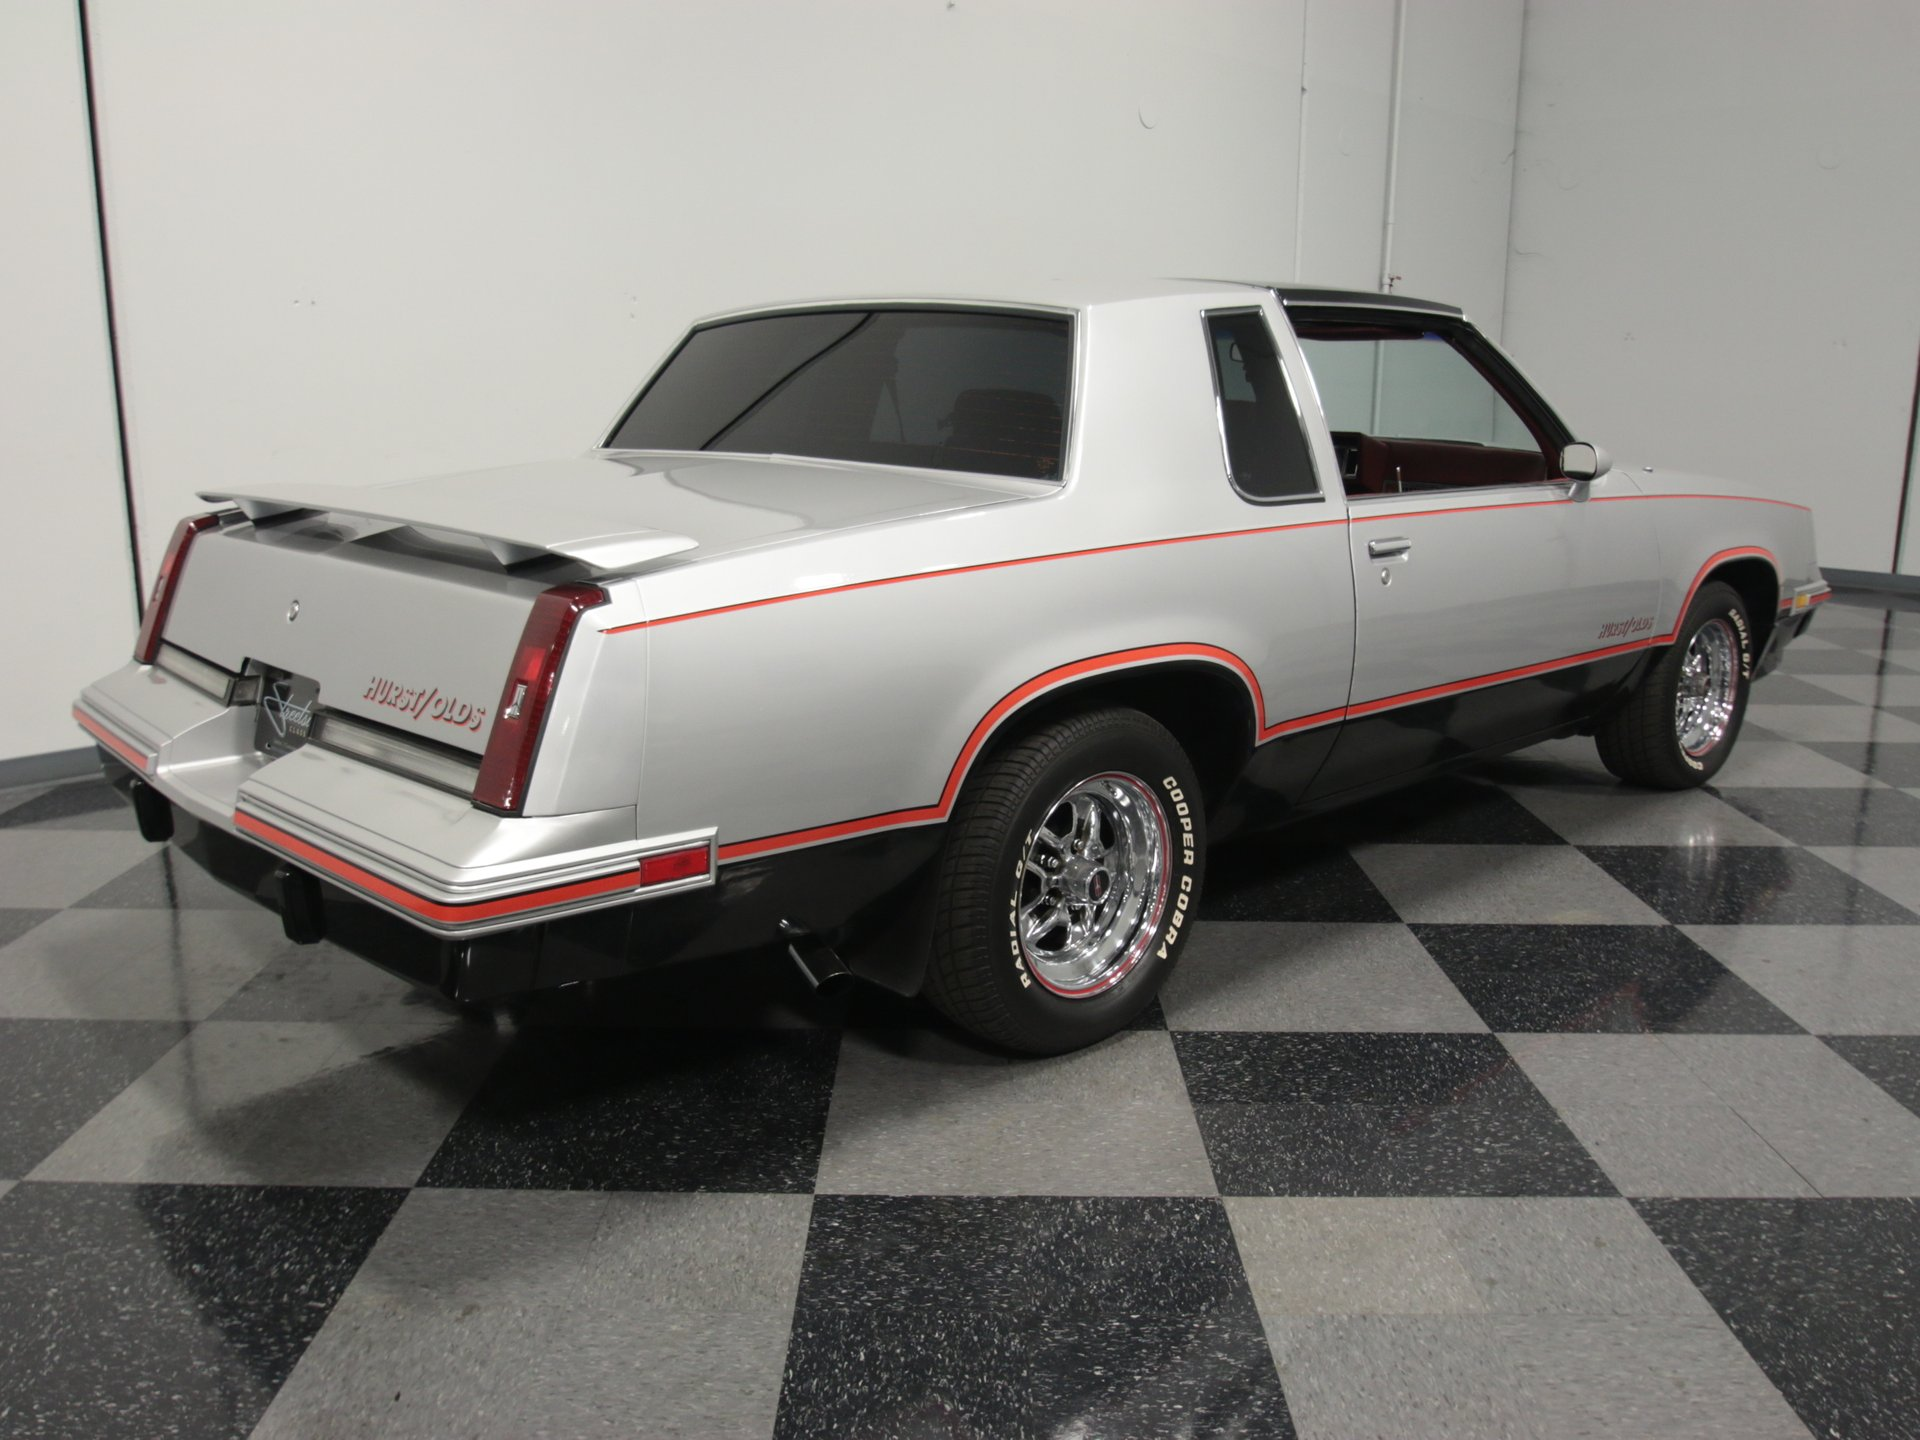 1984 Oldsmobile Cutlass | Streetside Classics - The Nation's